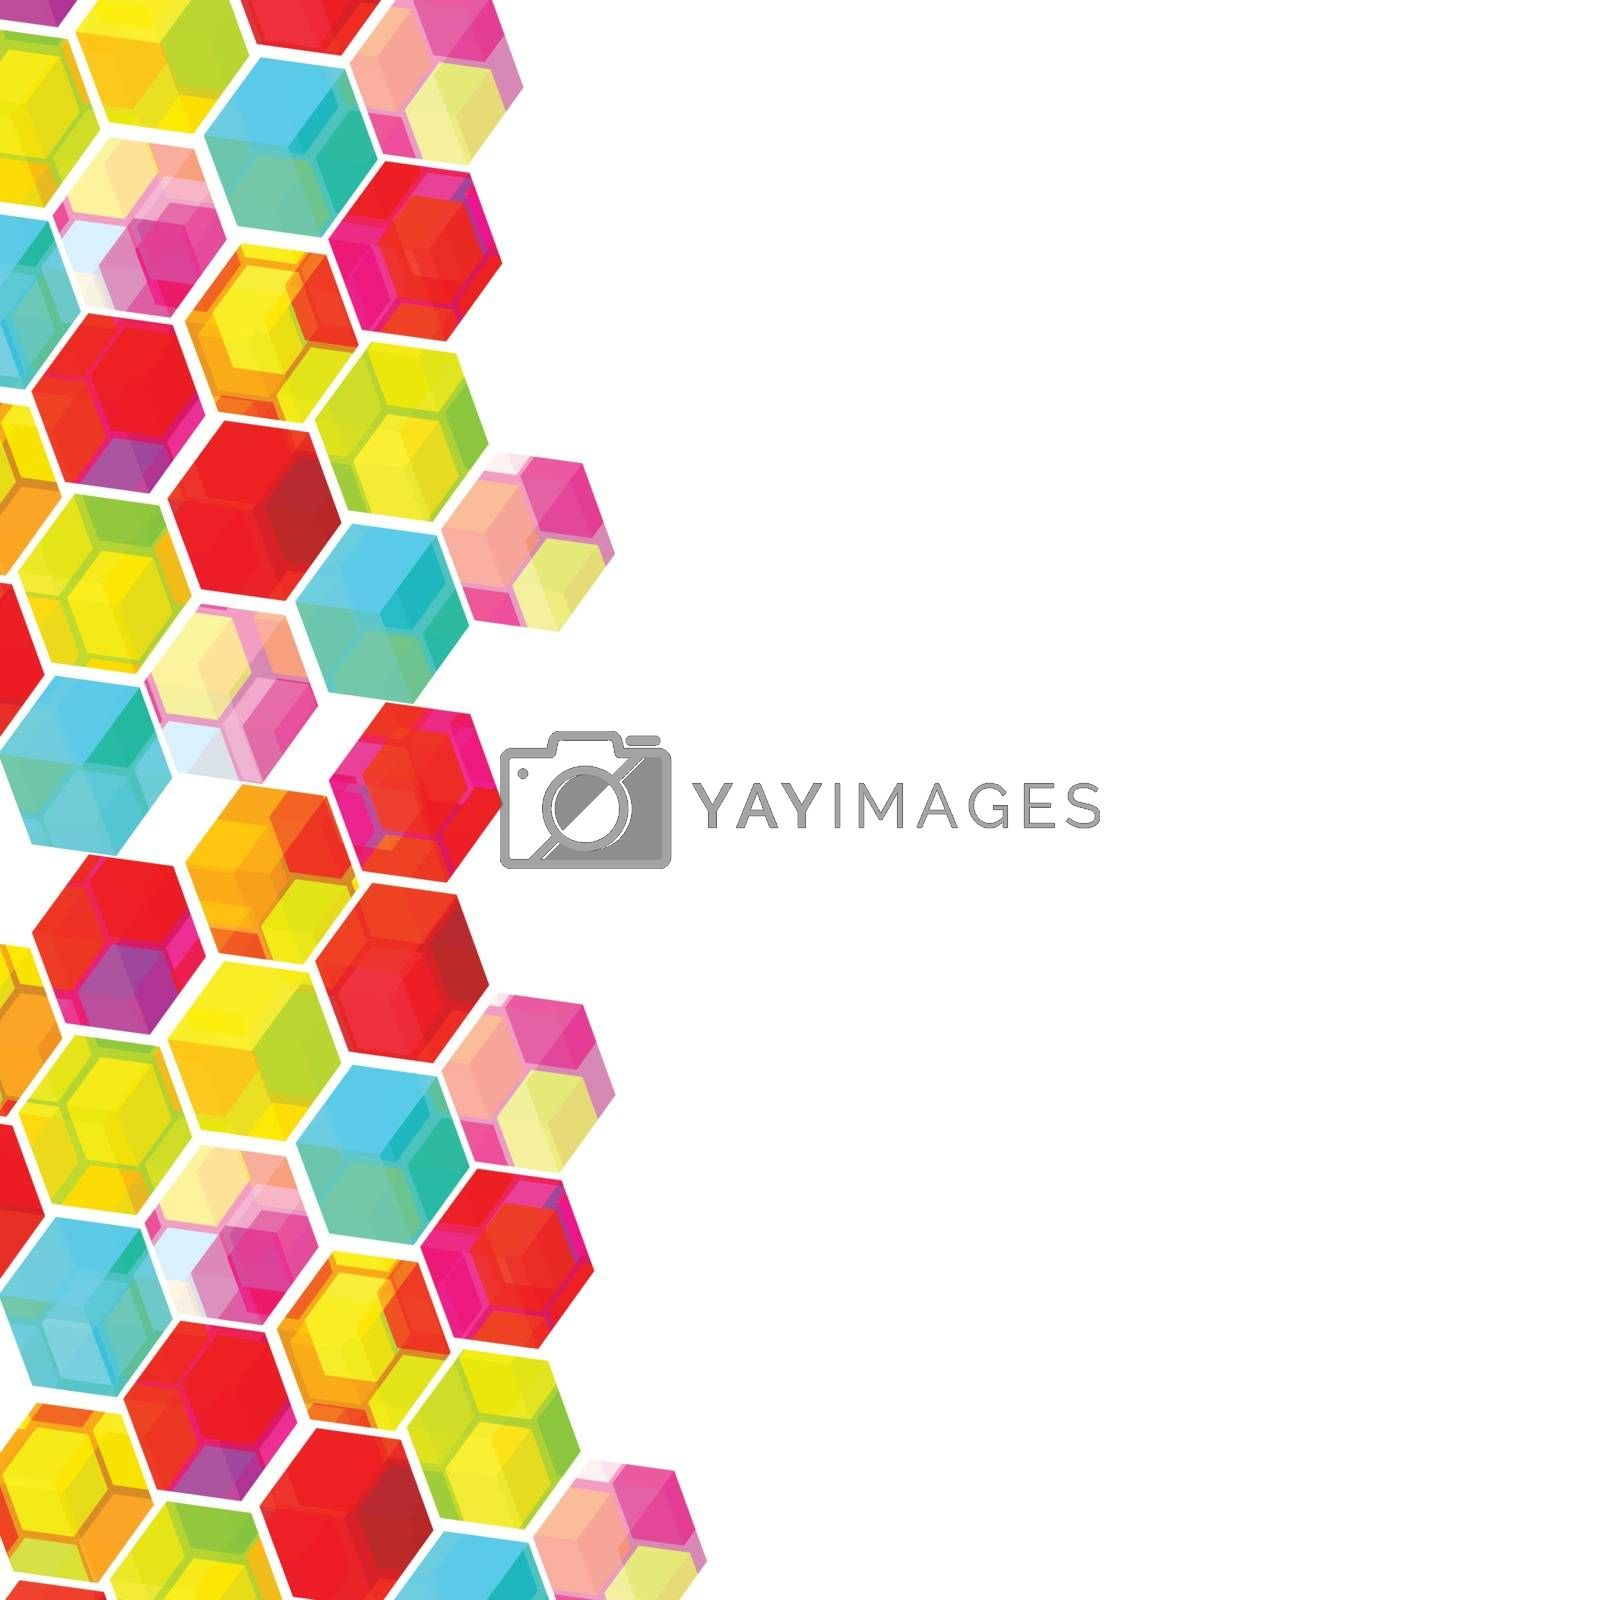 Abstract background with colorful geomatric shapes.